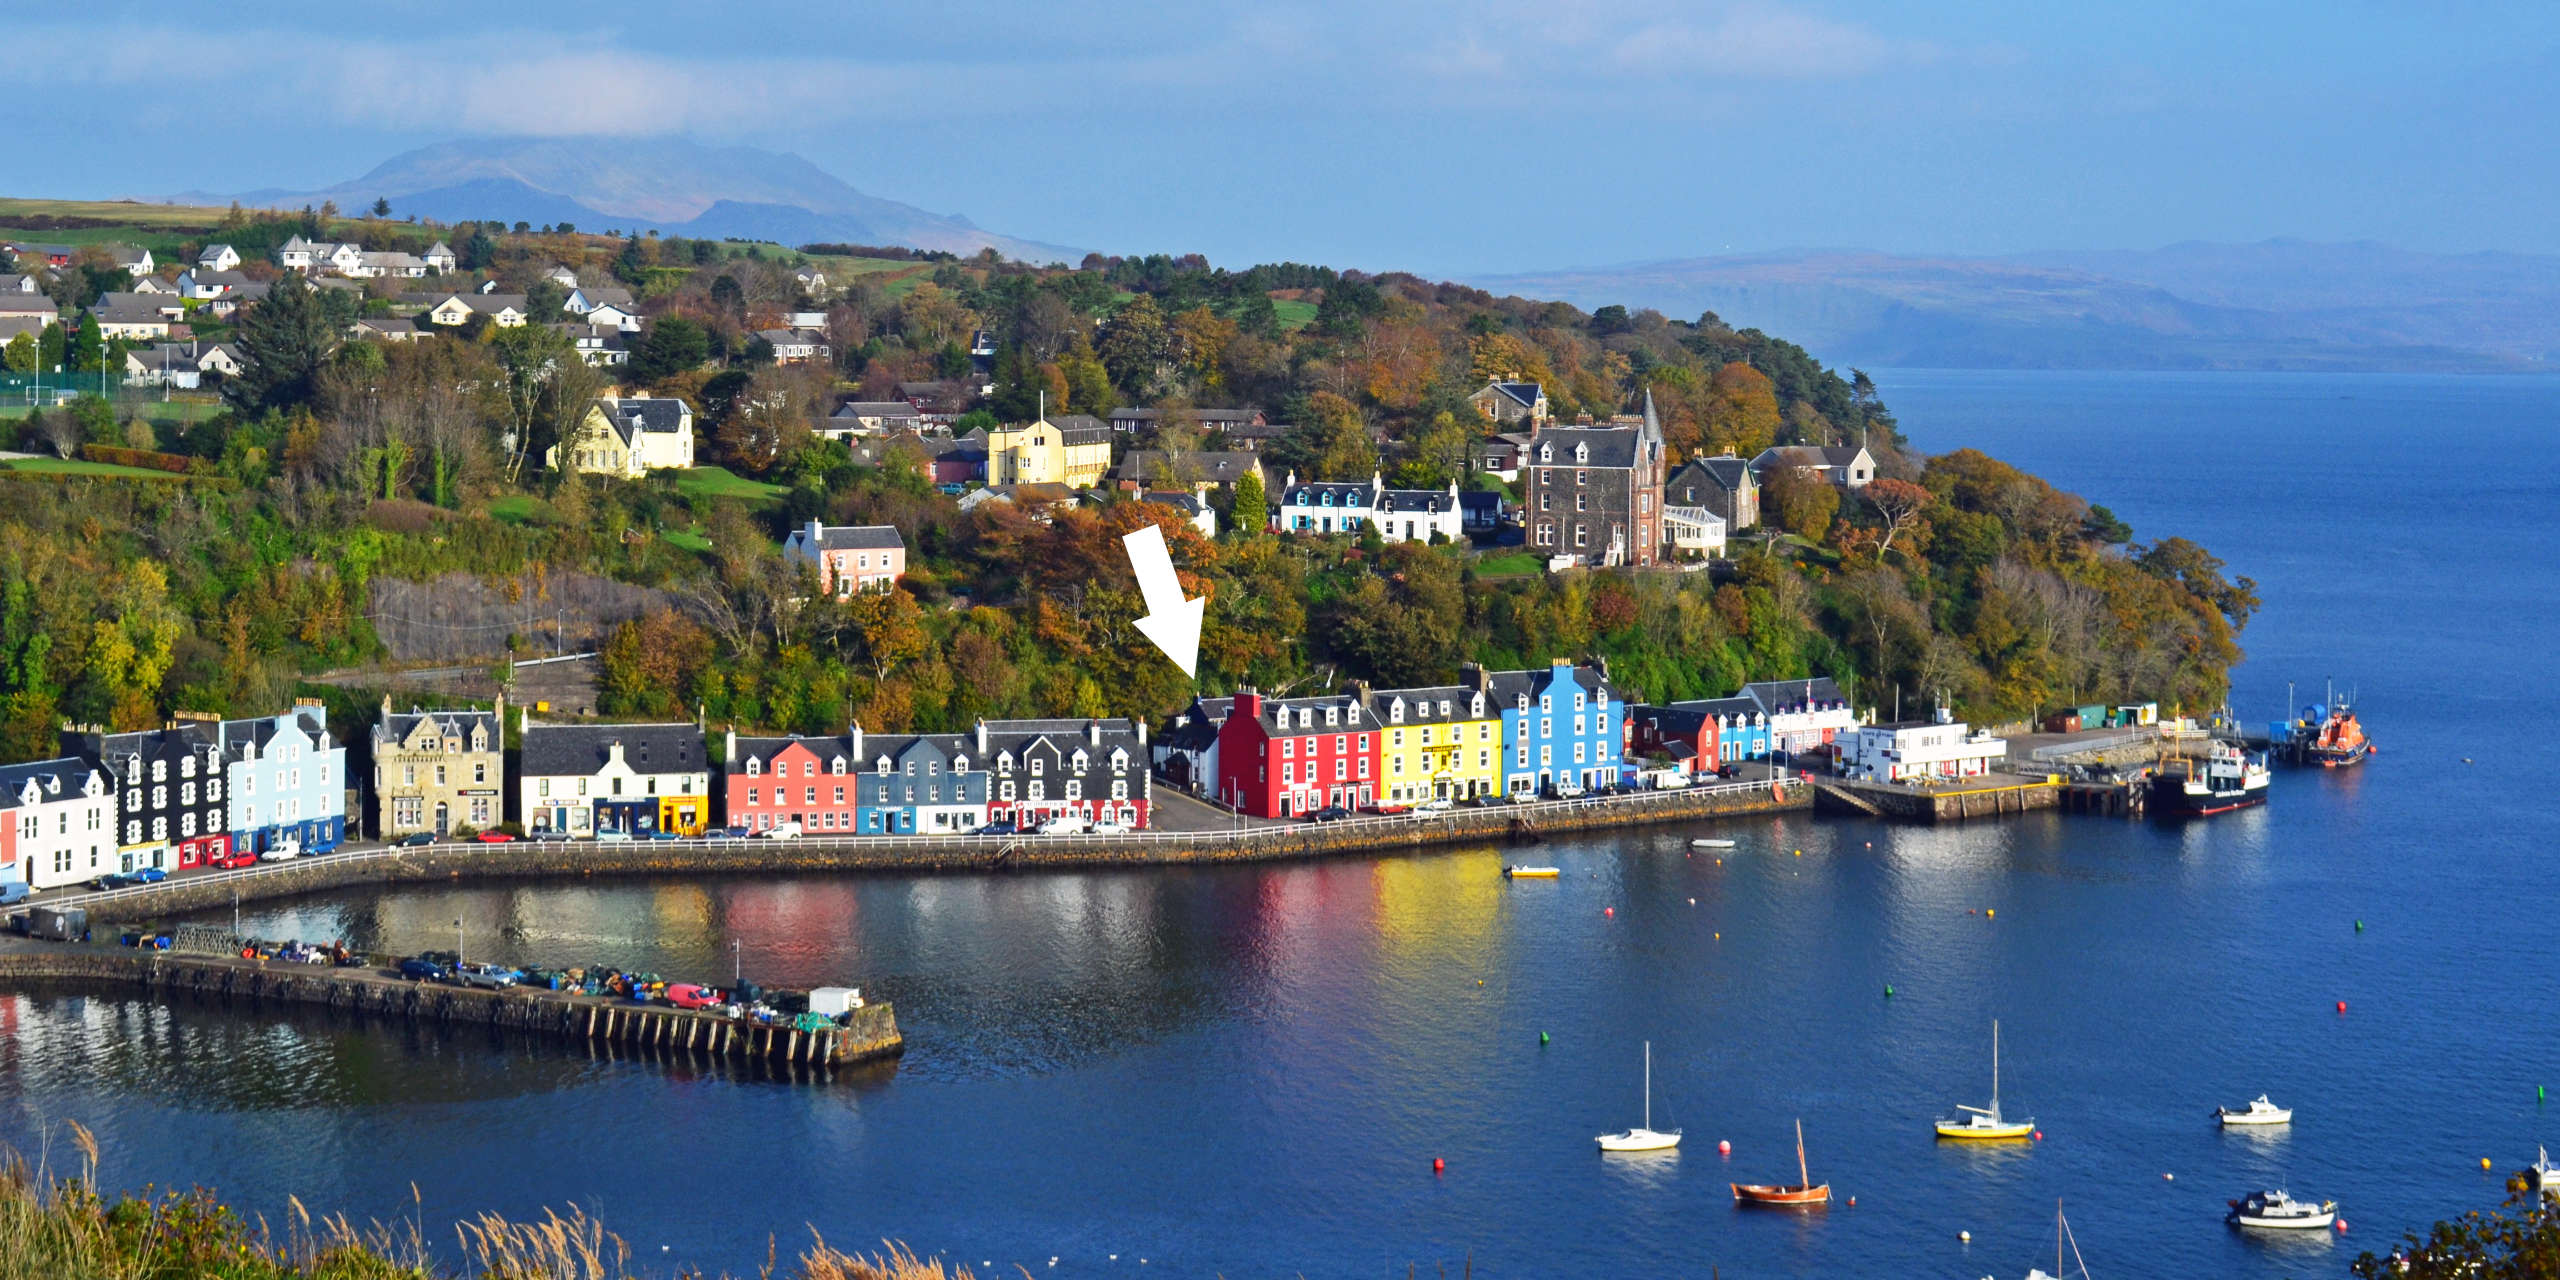 Back Brae Lodge location in Tobermory town